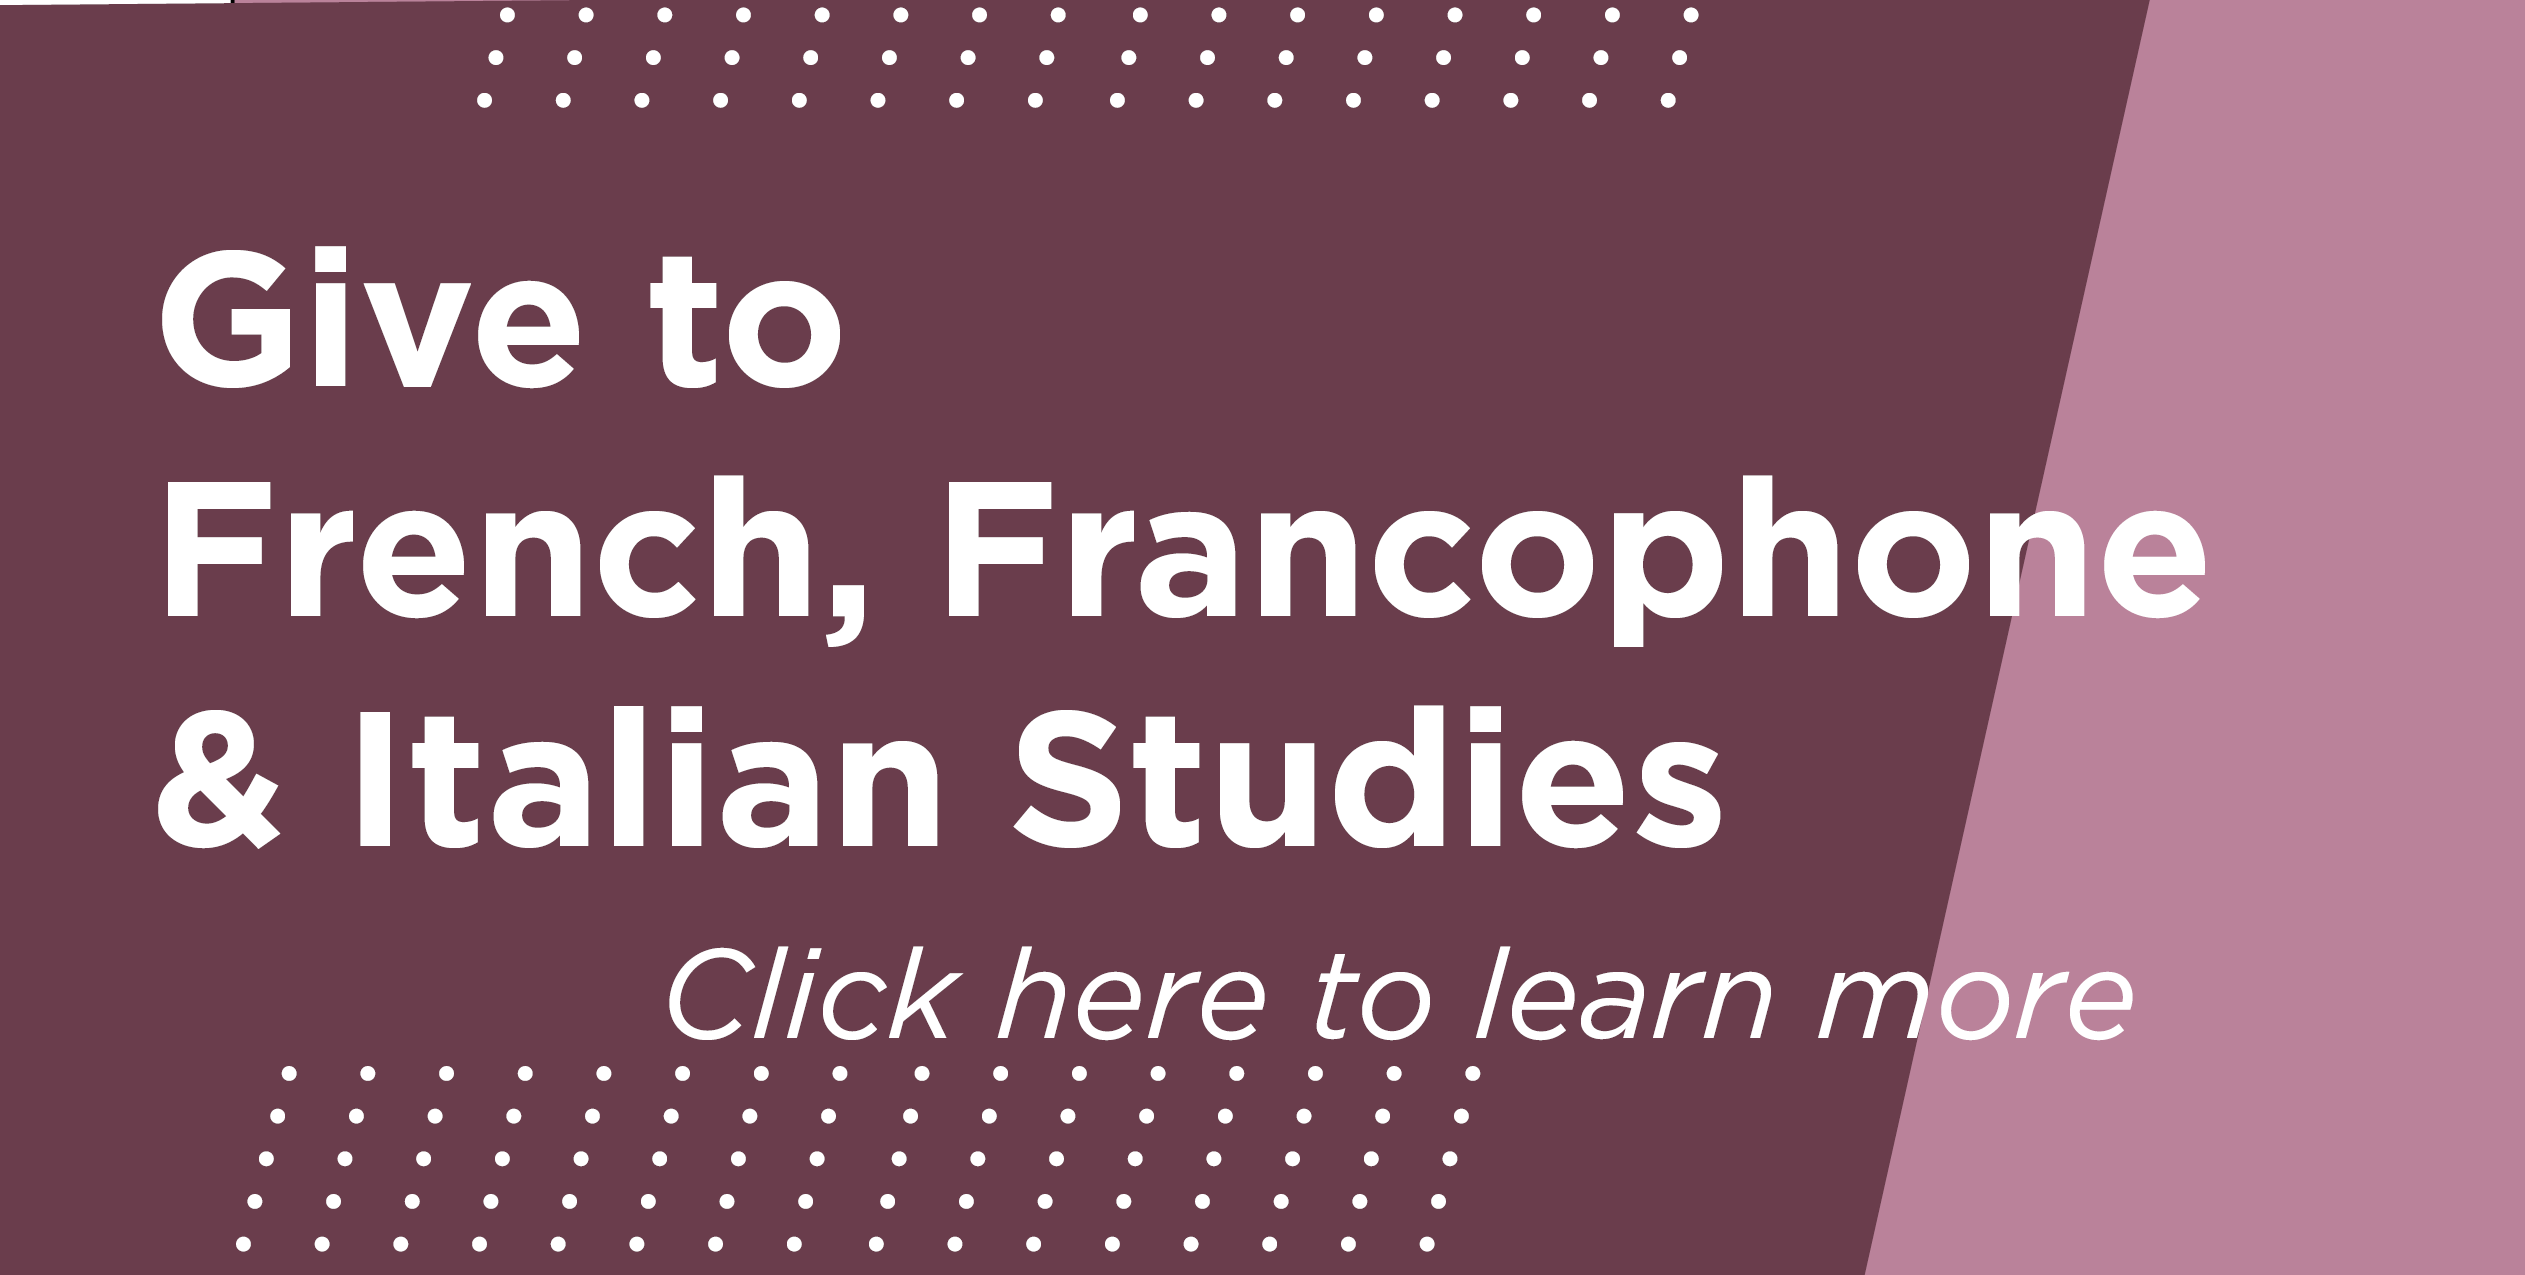 Give to French, Francophone & Italian Studies